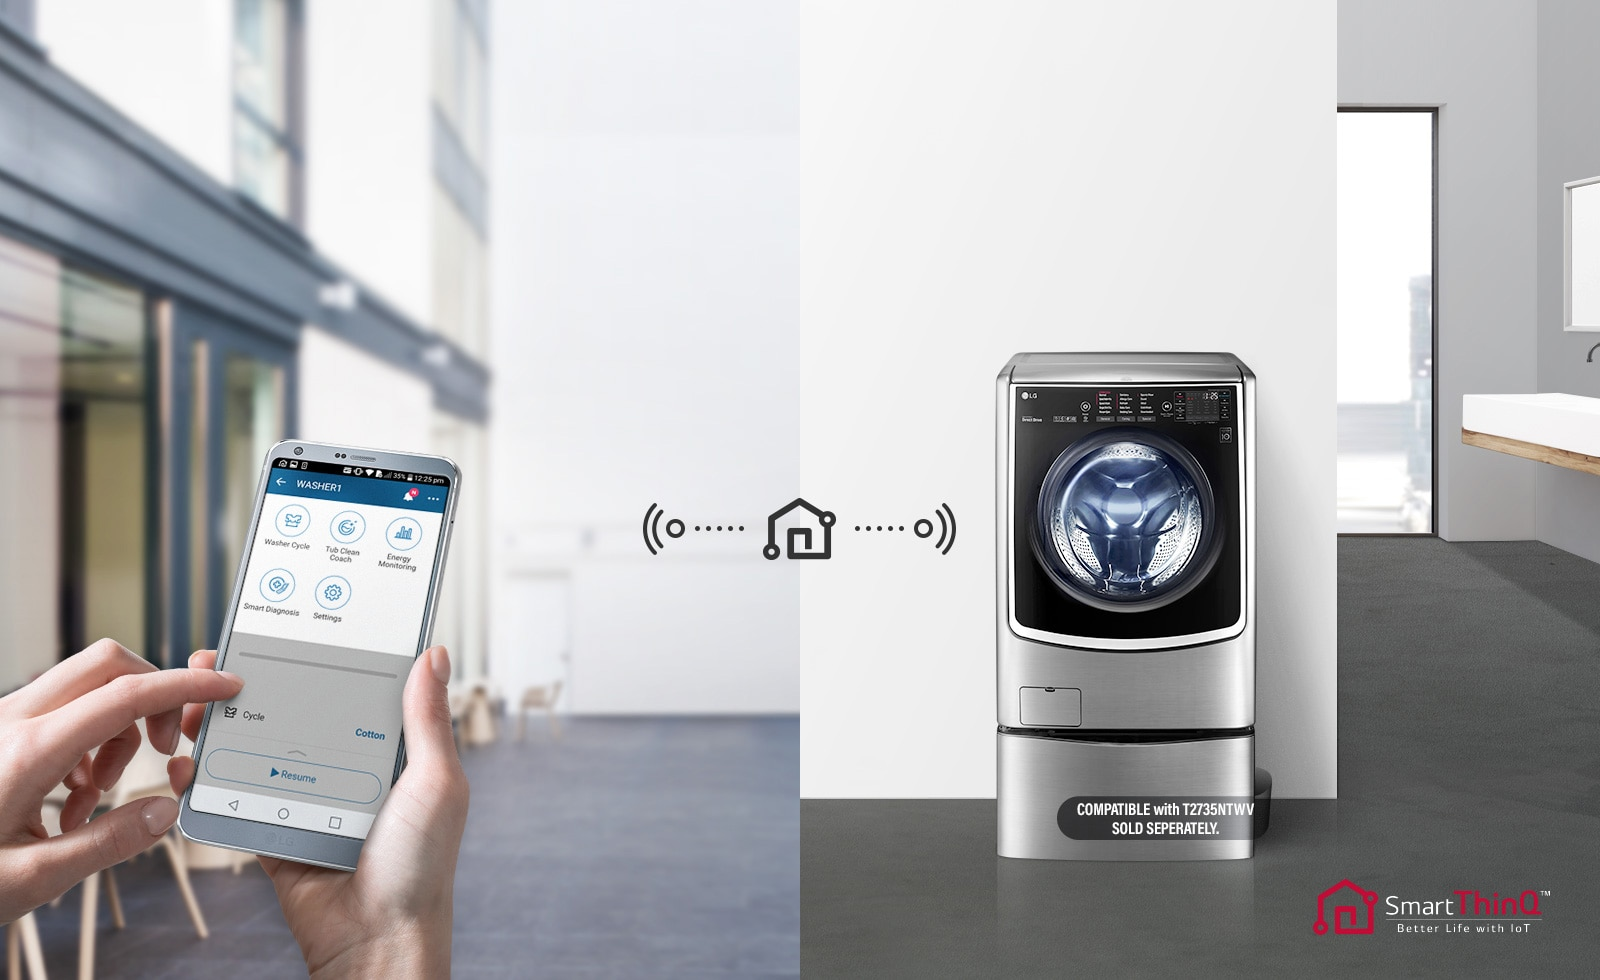 Smart Convenience with WiFi<br>3